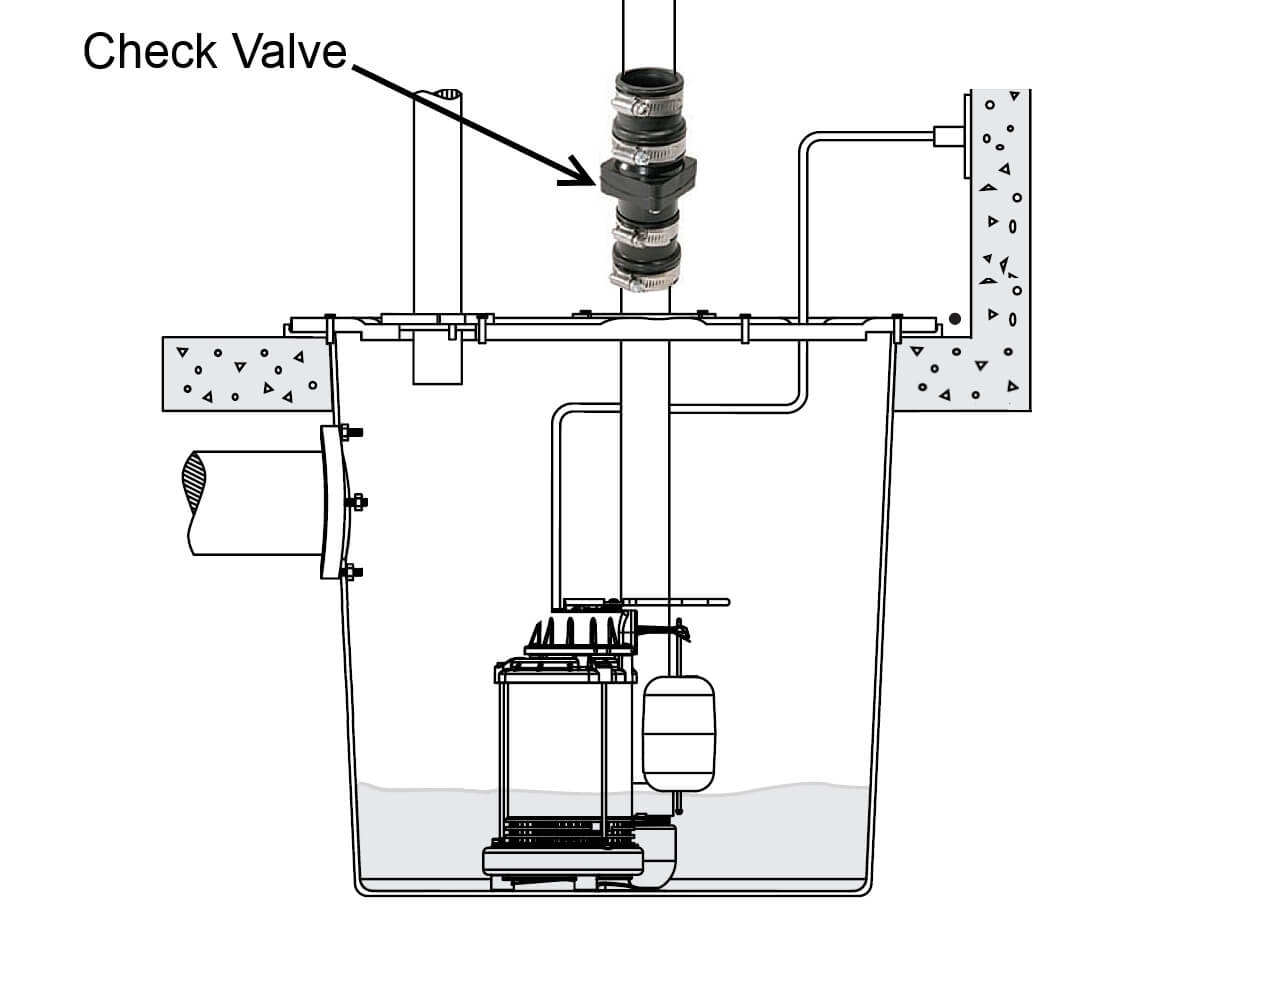 check valve piping schematic